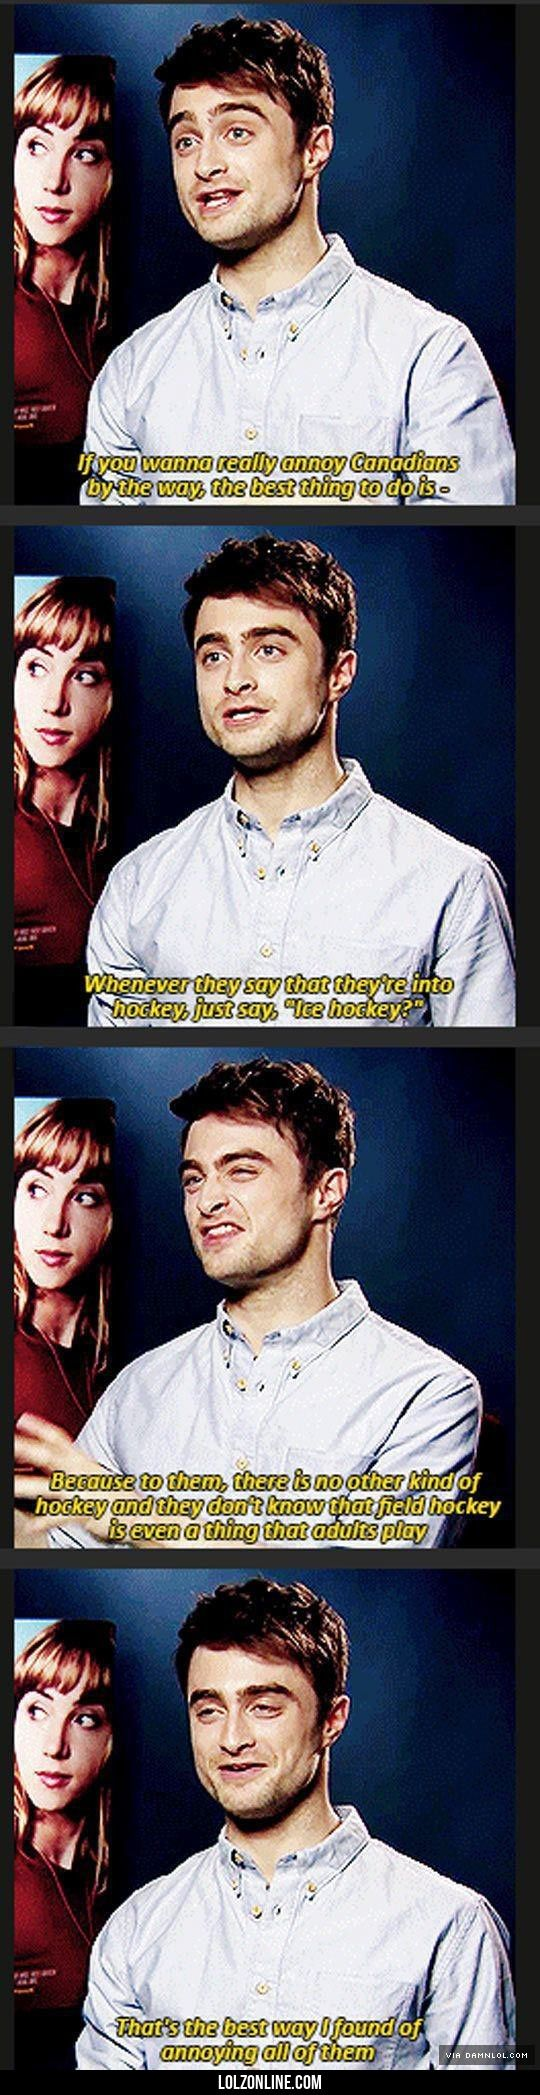 How To Annoy Canadians By Daniel Radcliffe#funny #lol #lolzonline